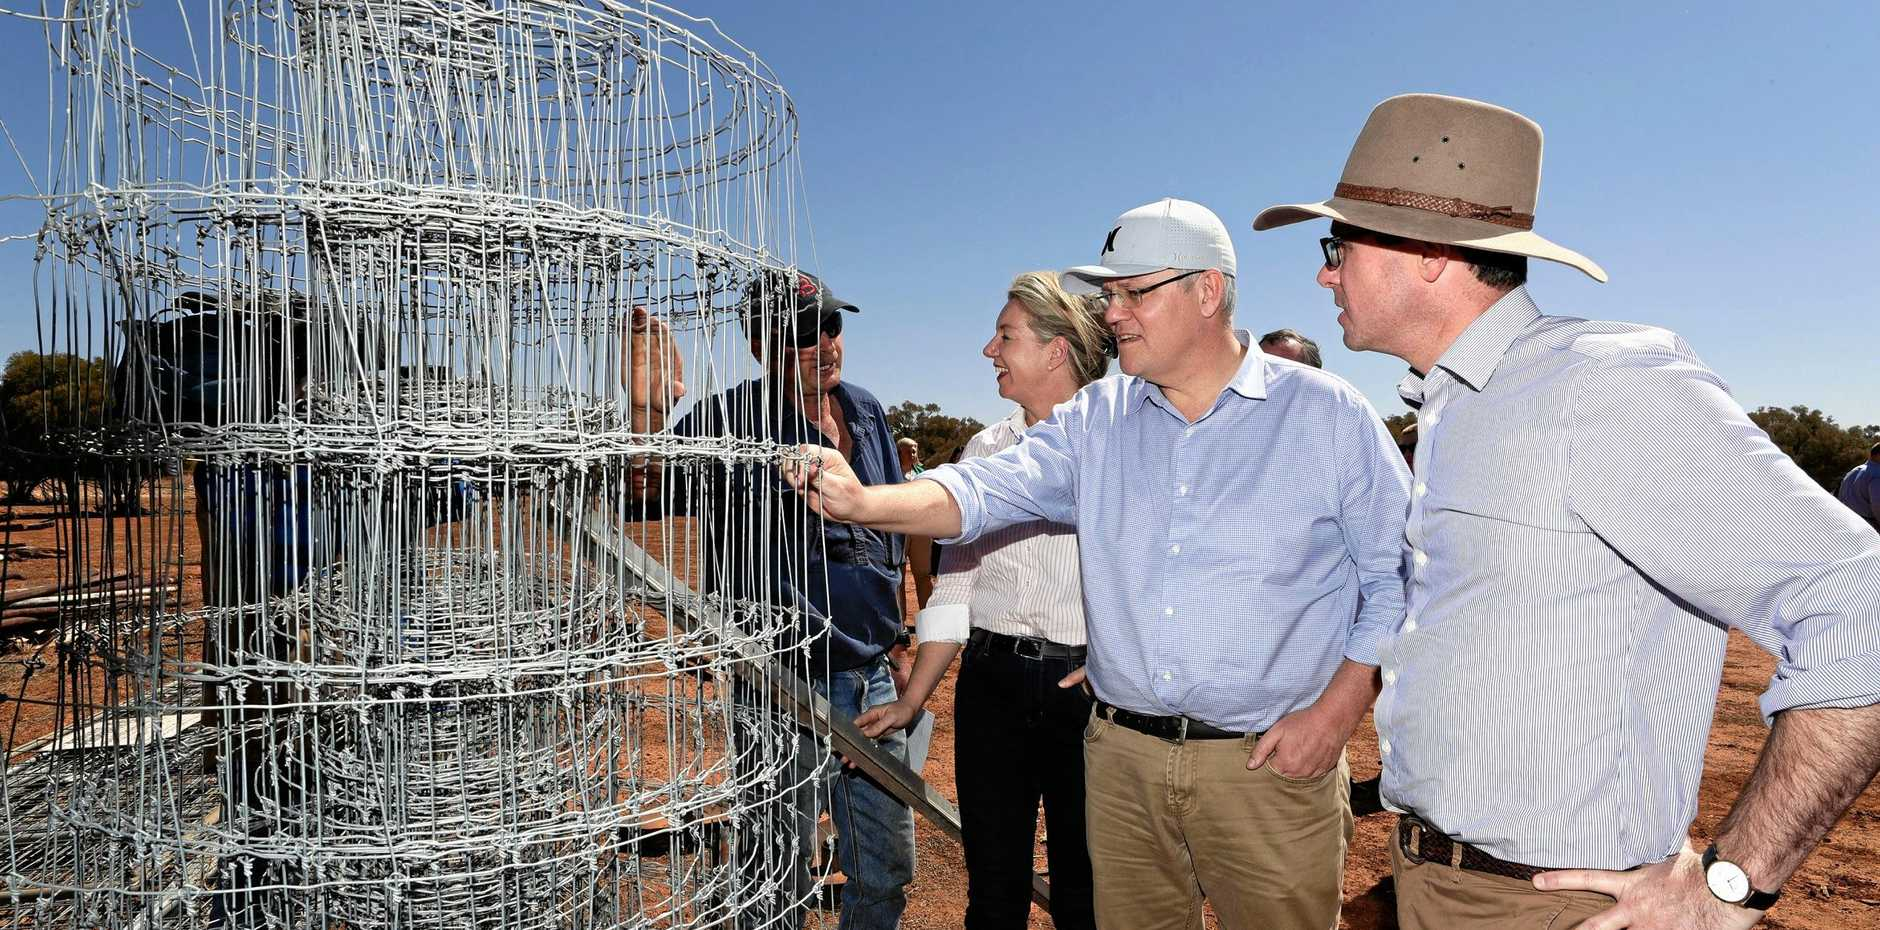 Sheep and cattle grazier Stephen Tully shows fencing material to Agricultural Minister Bridget McKenzie, Prime Minister Scott Morrison and Minister for Water Resources David Littleproud